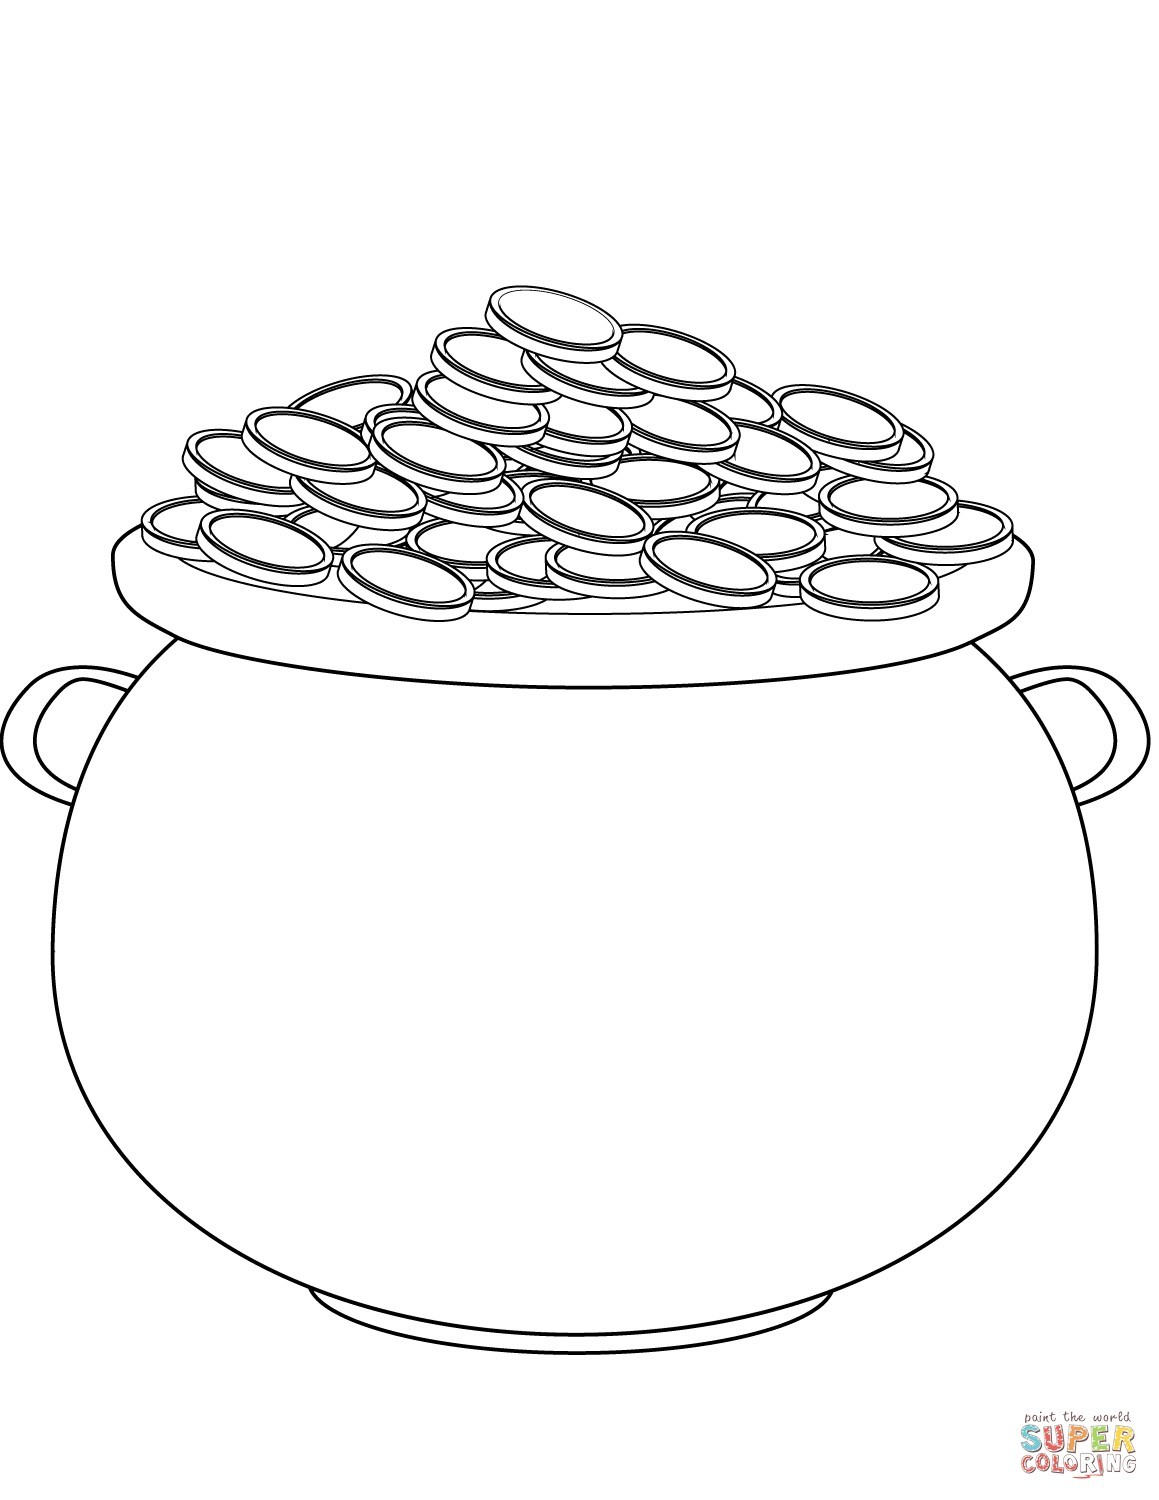 Fundamentals Pot Of Gold Coloring Page Printable Category Pages 117 - Pot Of Gold Template Free Printable